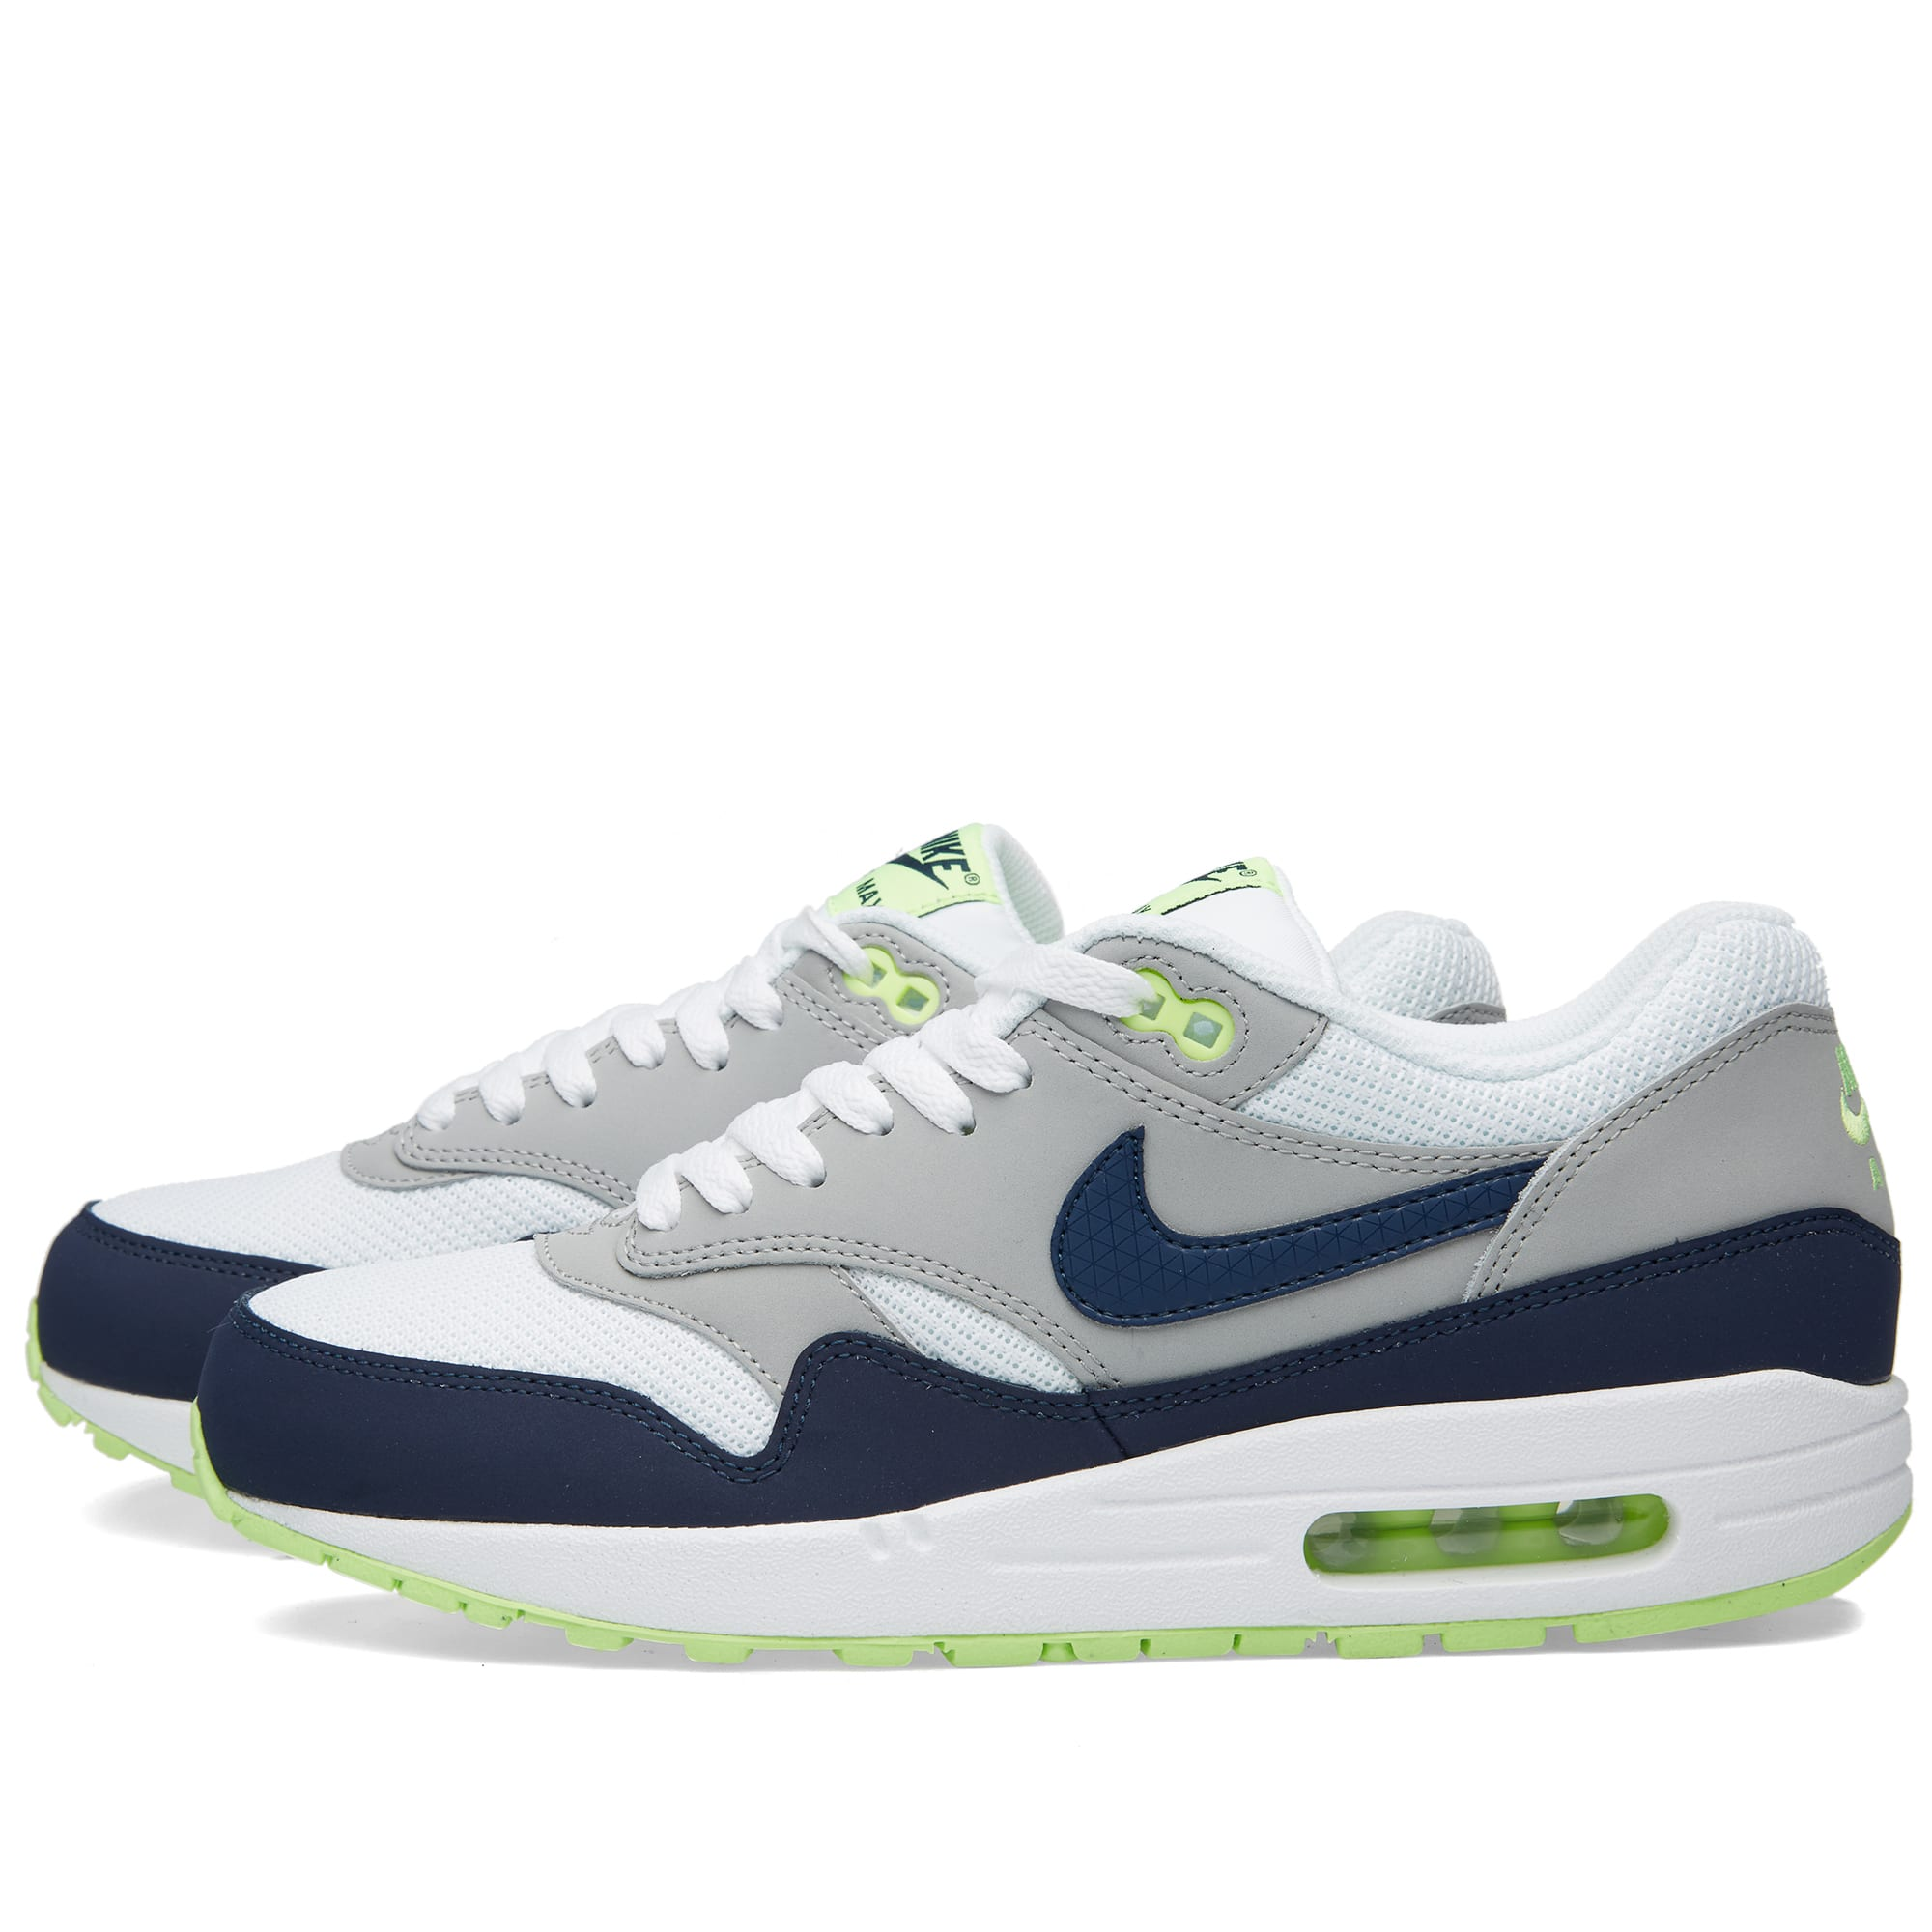 check out 5f4c3 406ba Nike Air Max 1 Essential White, Midnight Navy   Silver   END.